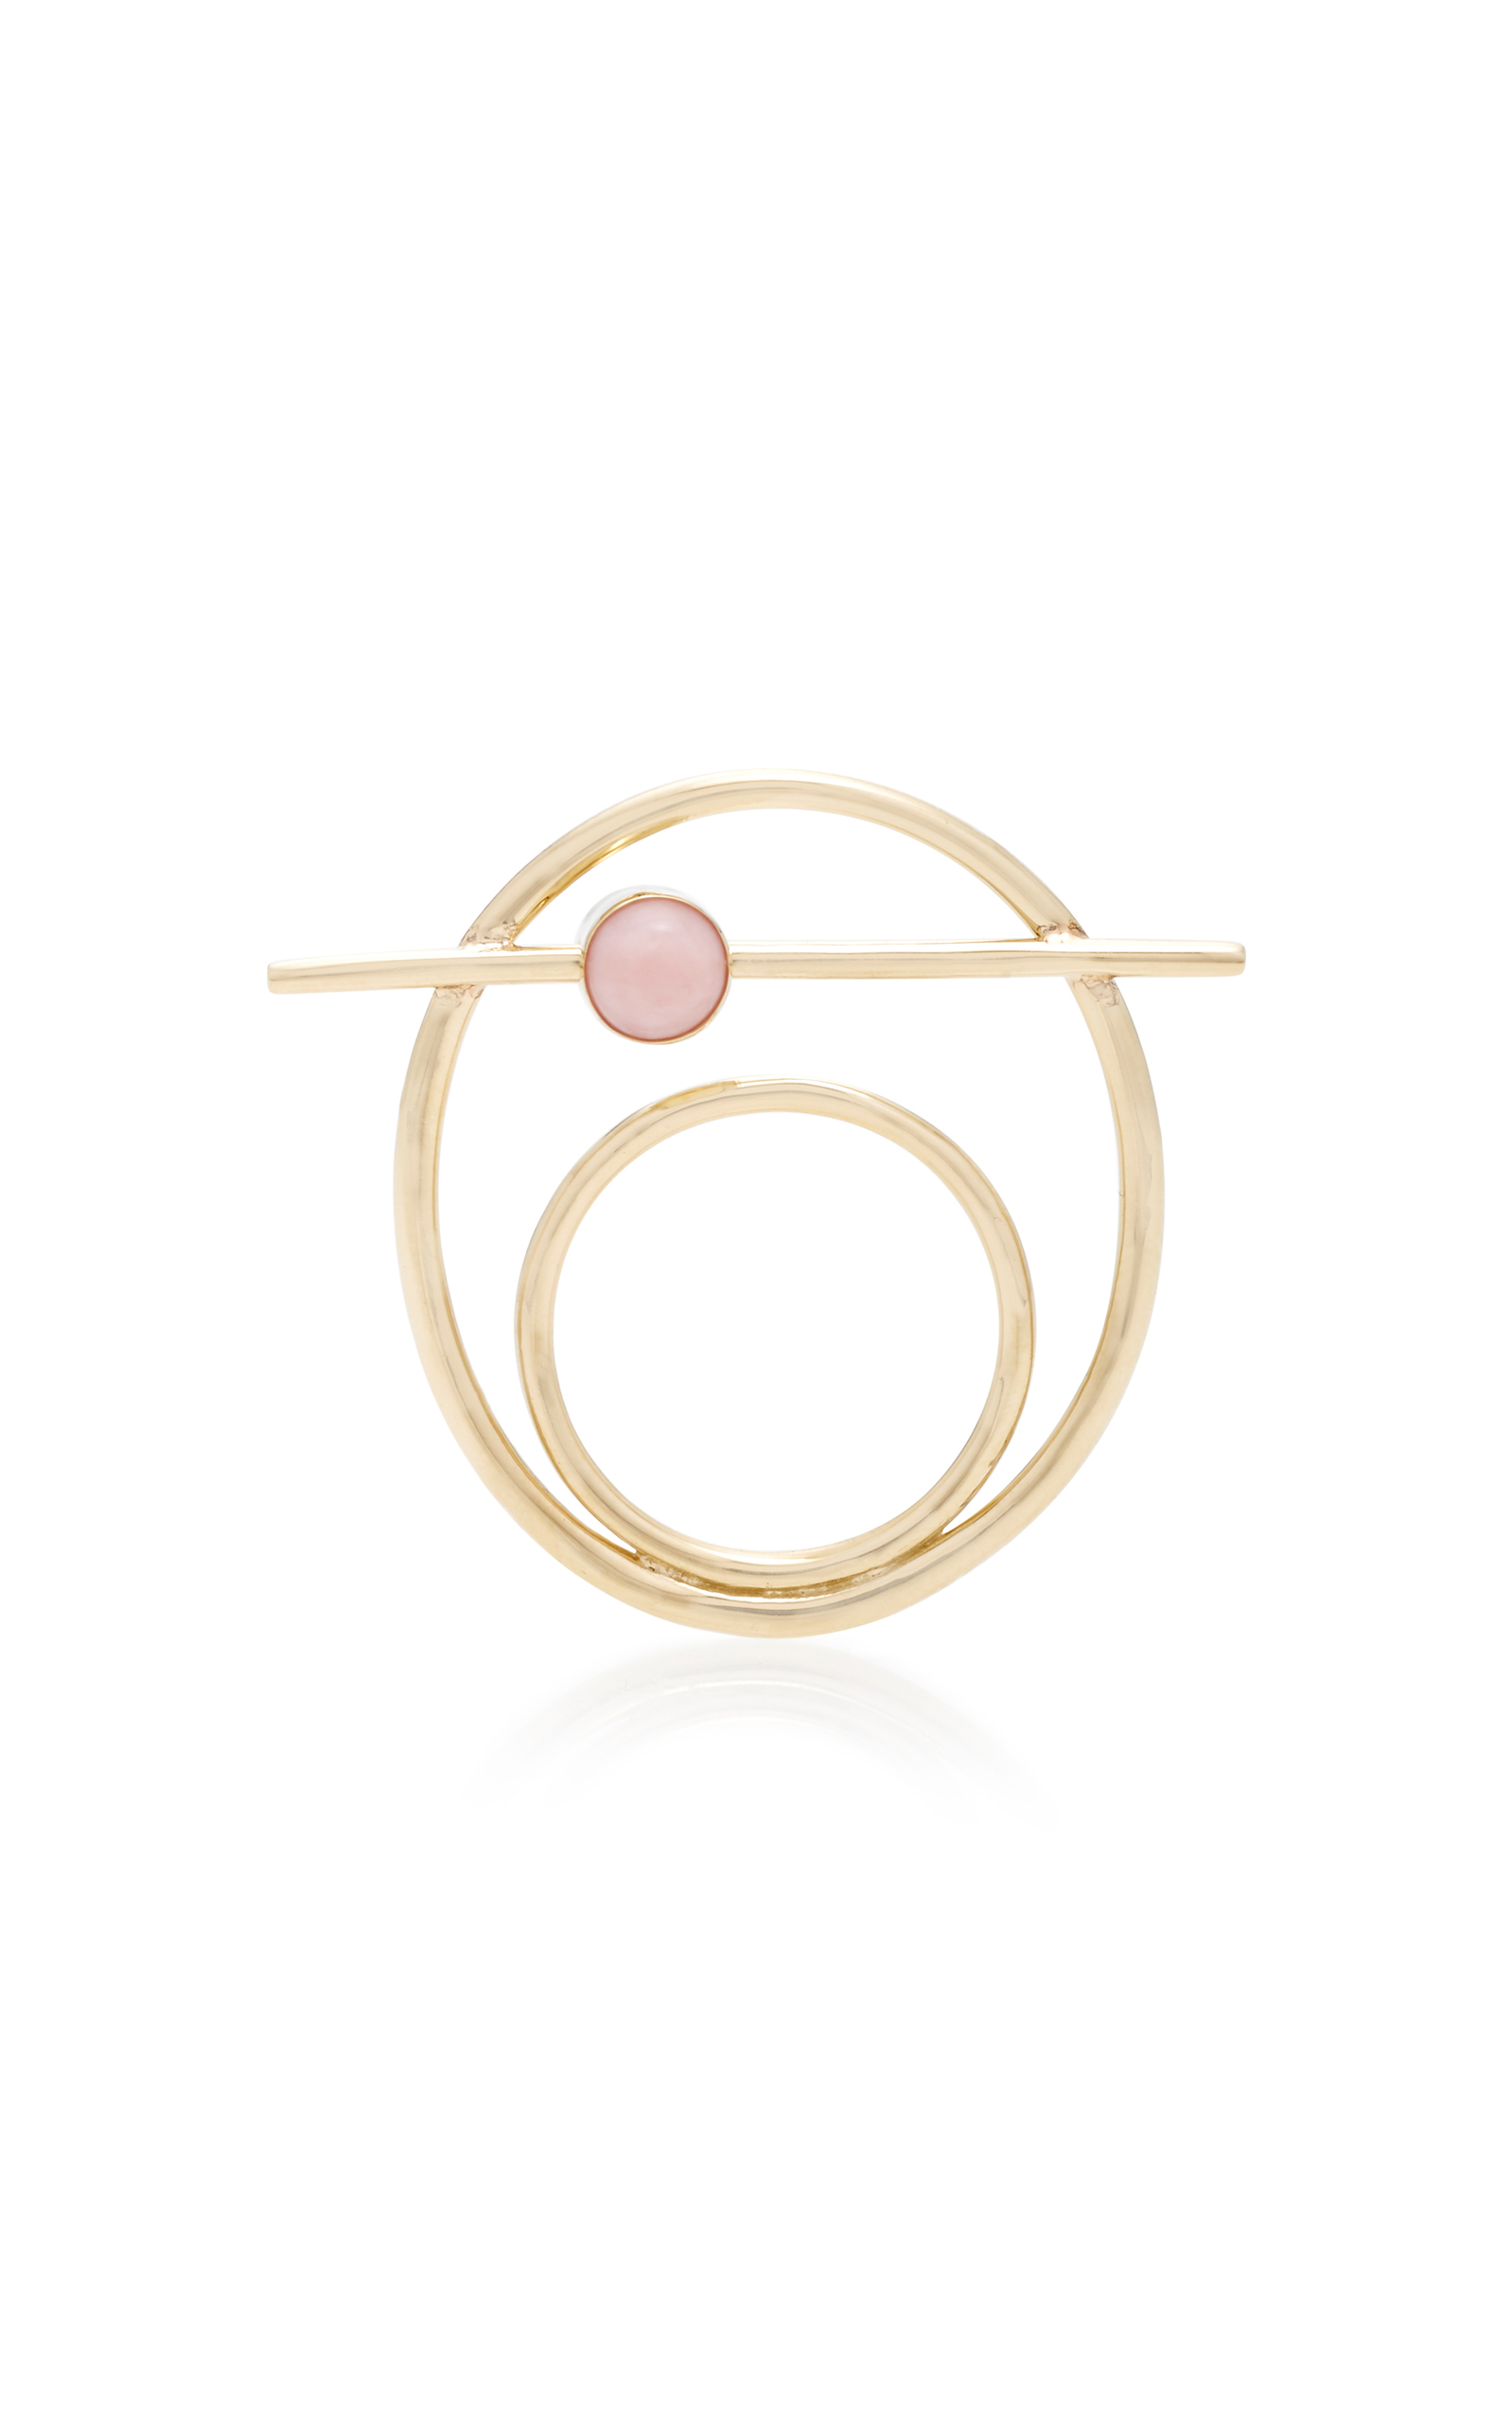 PILI RESTREPO SUNO 10K GOLD PINK OPAL AND CABACHON RING